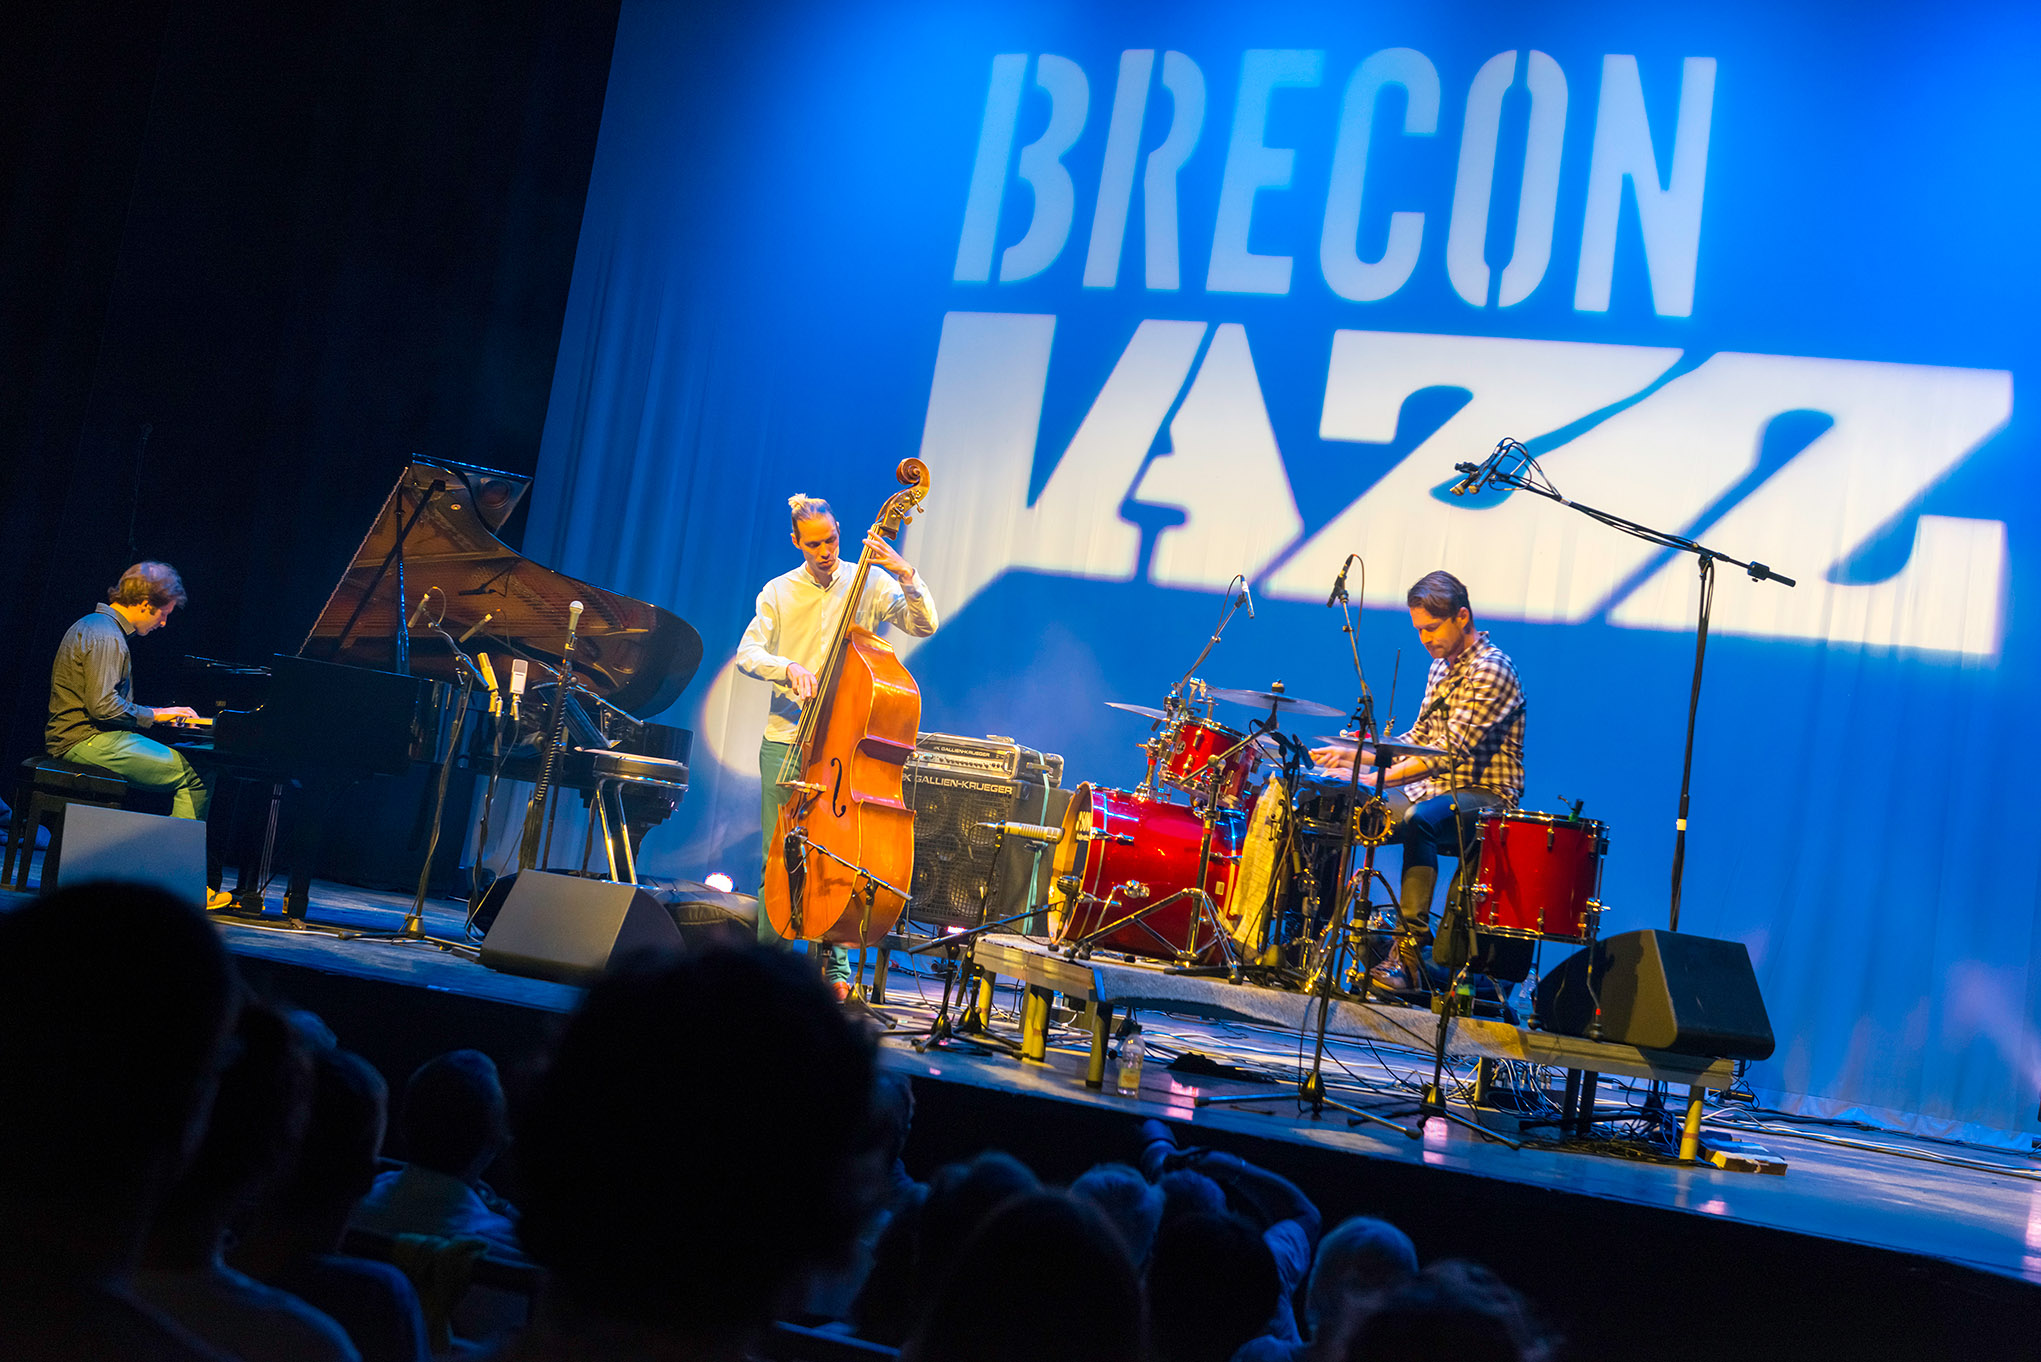 Group playing at Brecon Jazz